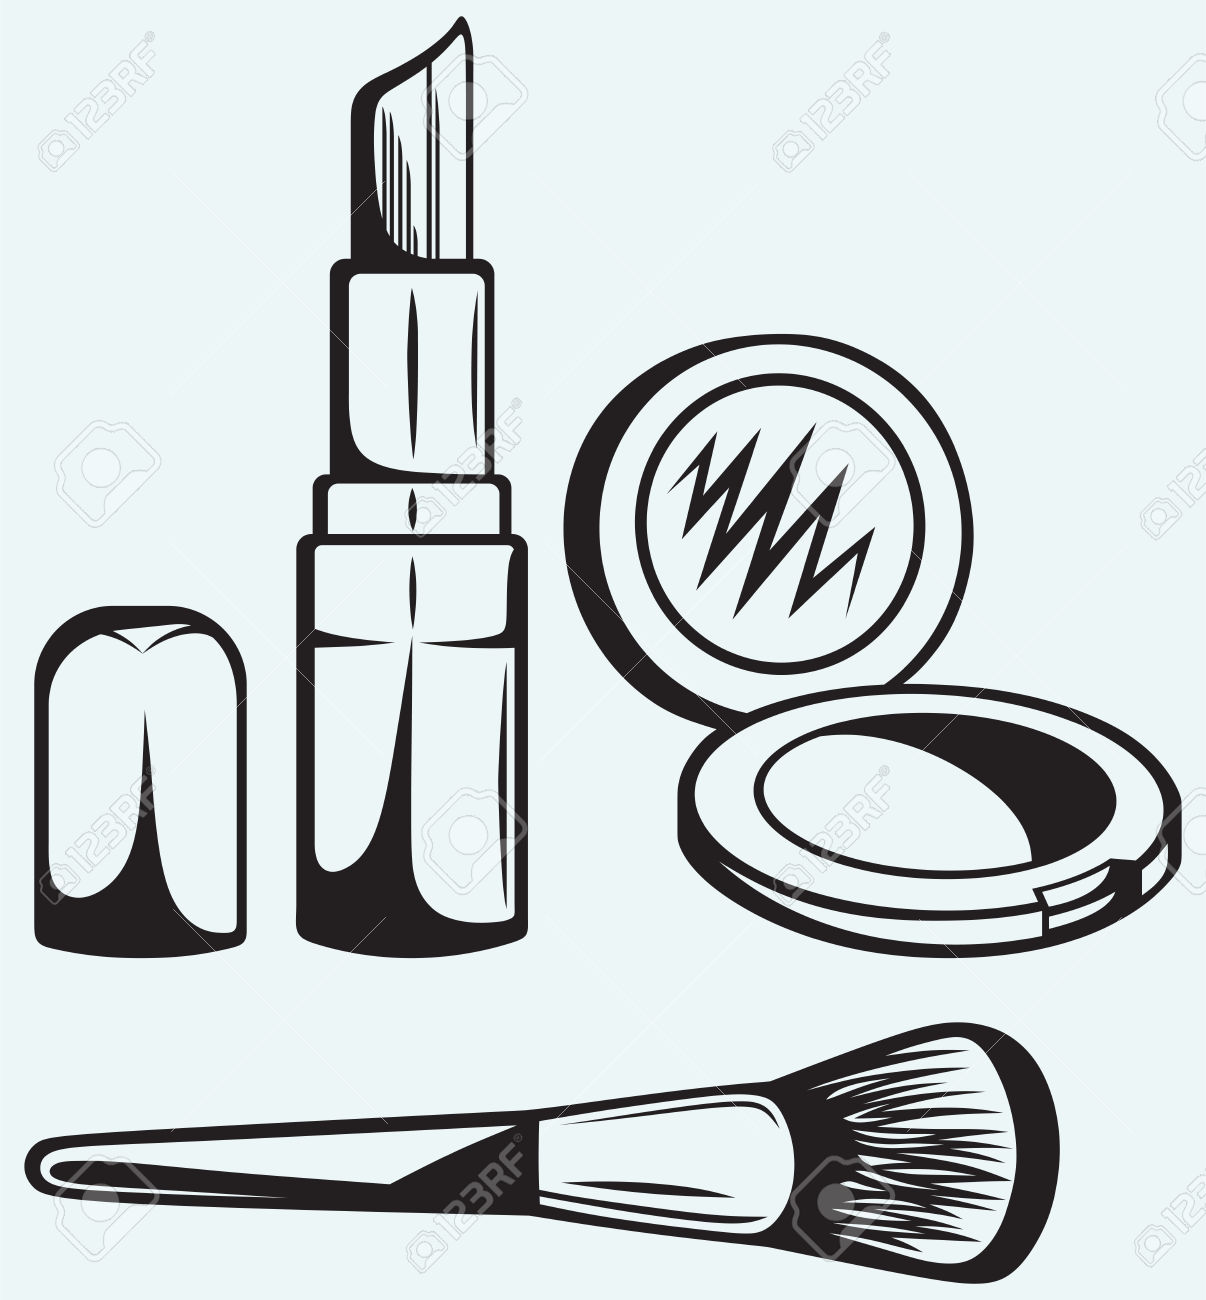 Putting On Makeup Clipart Black And White.